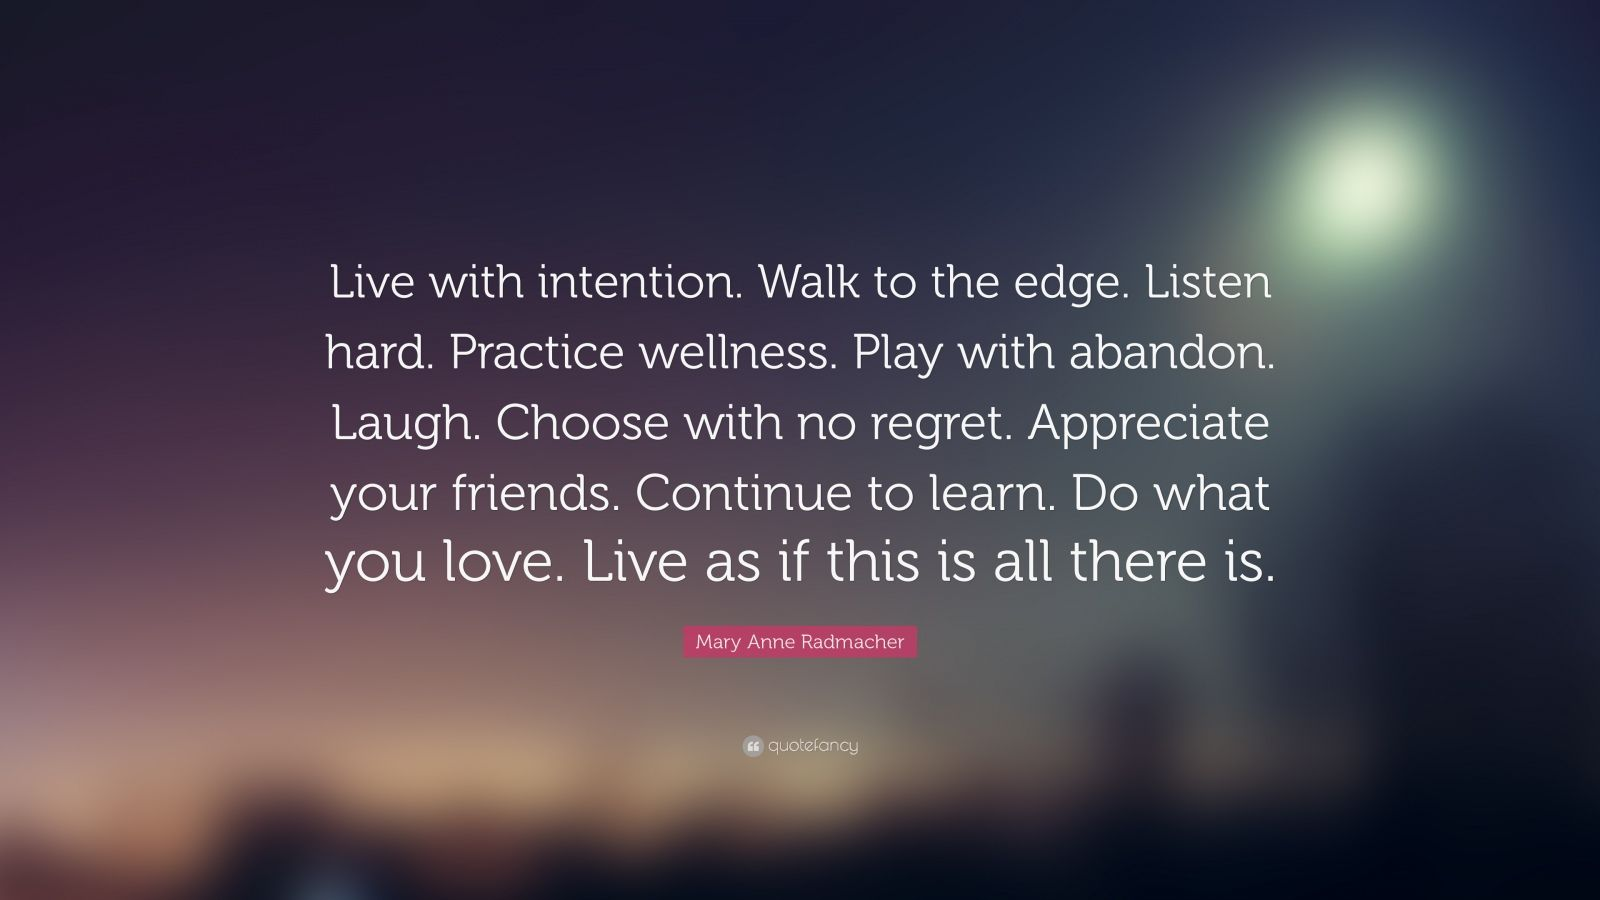 New Year Wallpaper With Love Quotes Mary Anne Radmacher Quote Live With Intention Walk To